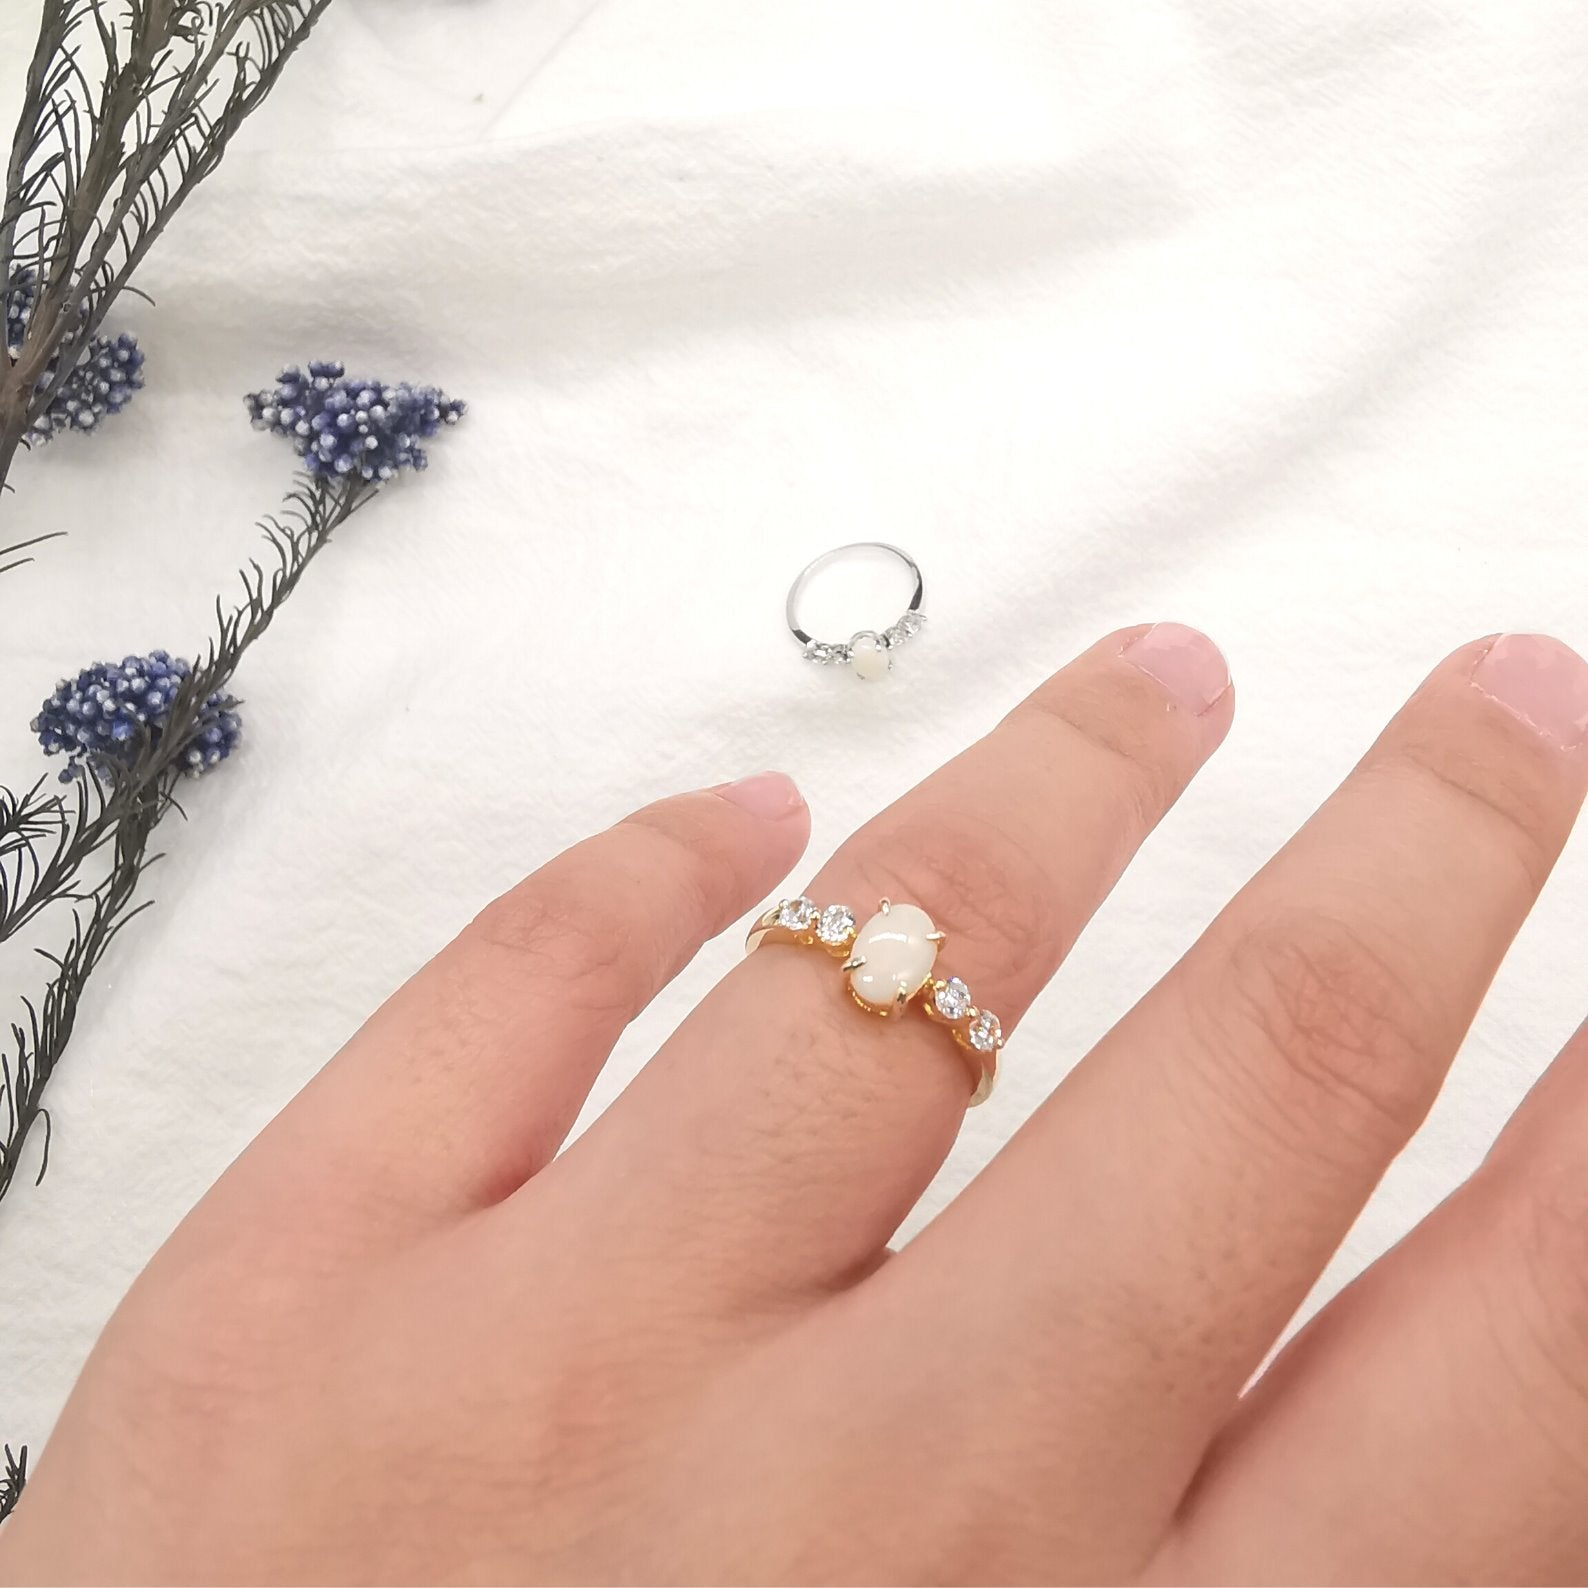 Dainty Solid Natural Opal Ring With Cubic Zirconia - Bolino Studio - Minimalist Jewellery